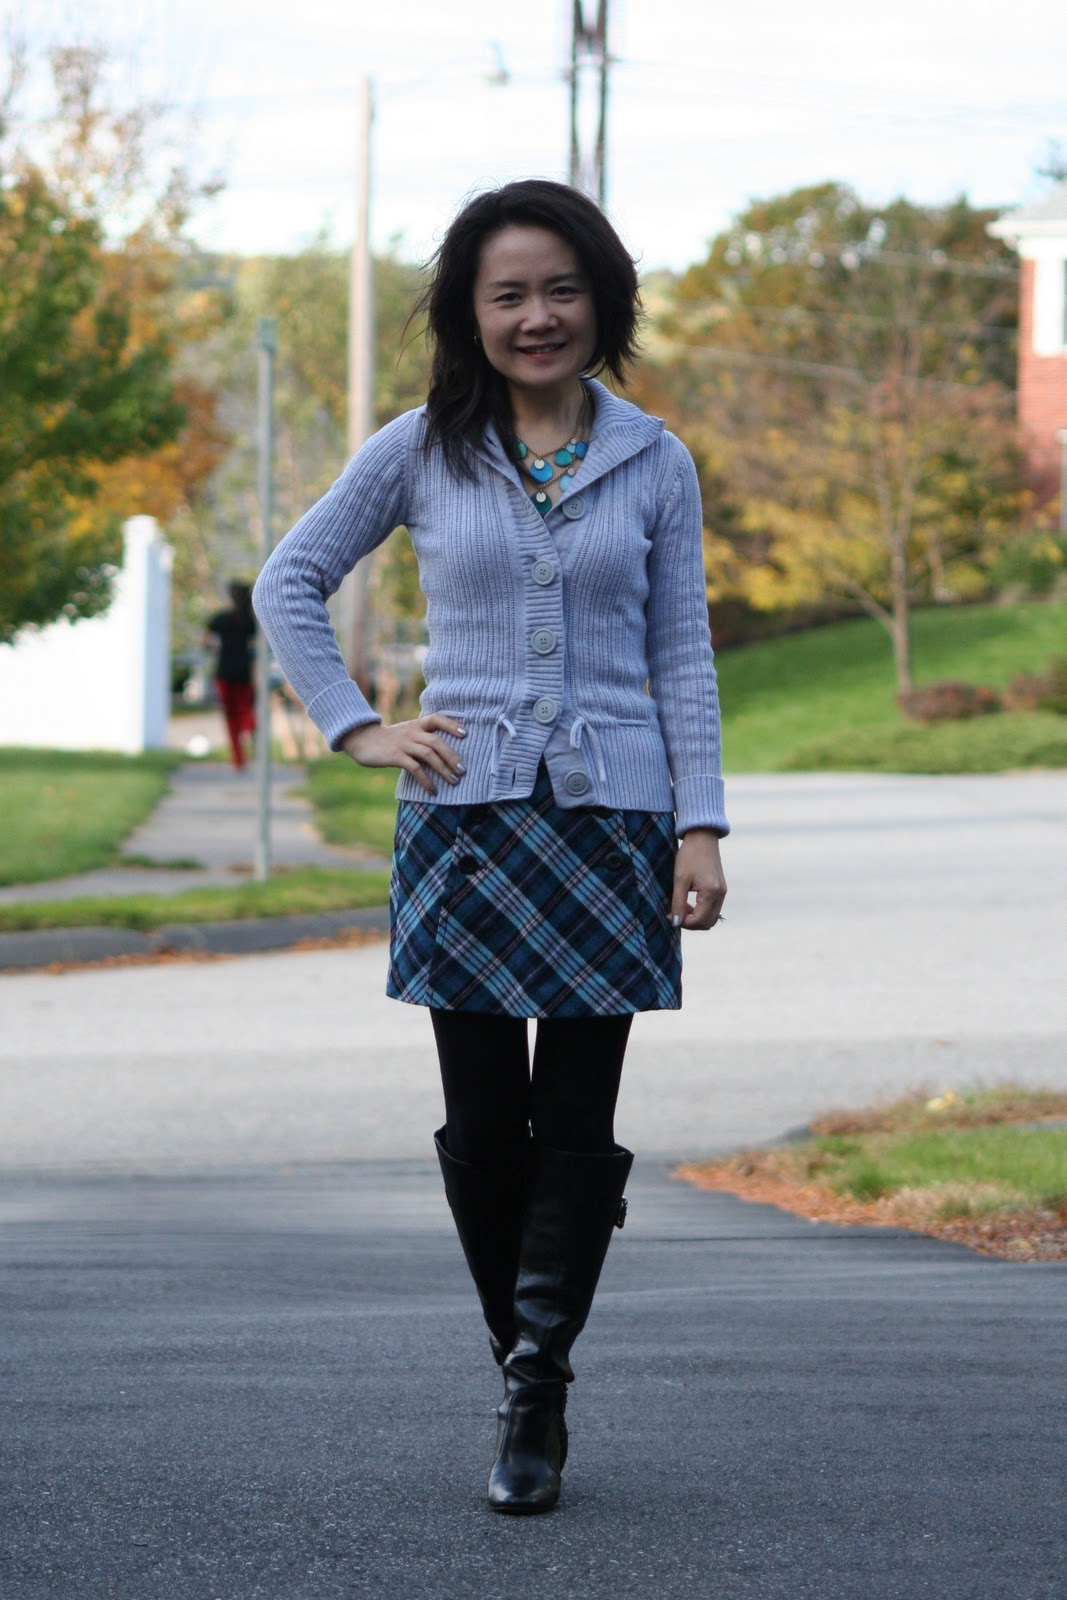 Vicky's Daily Fashion Blog: Plaid mini skirt with boots